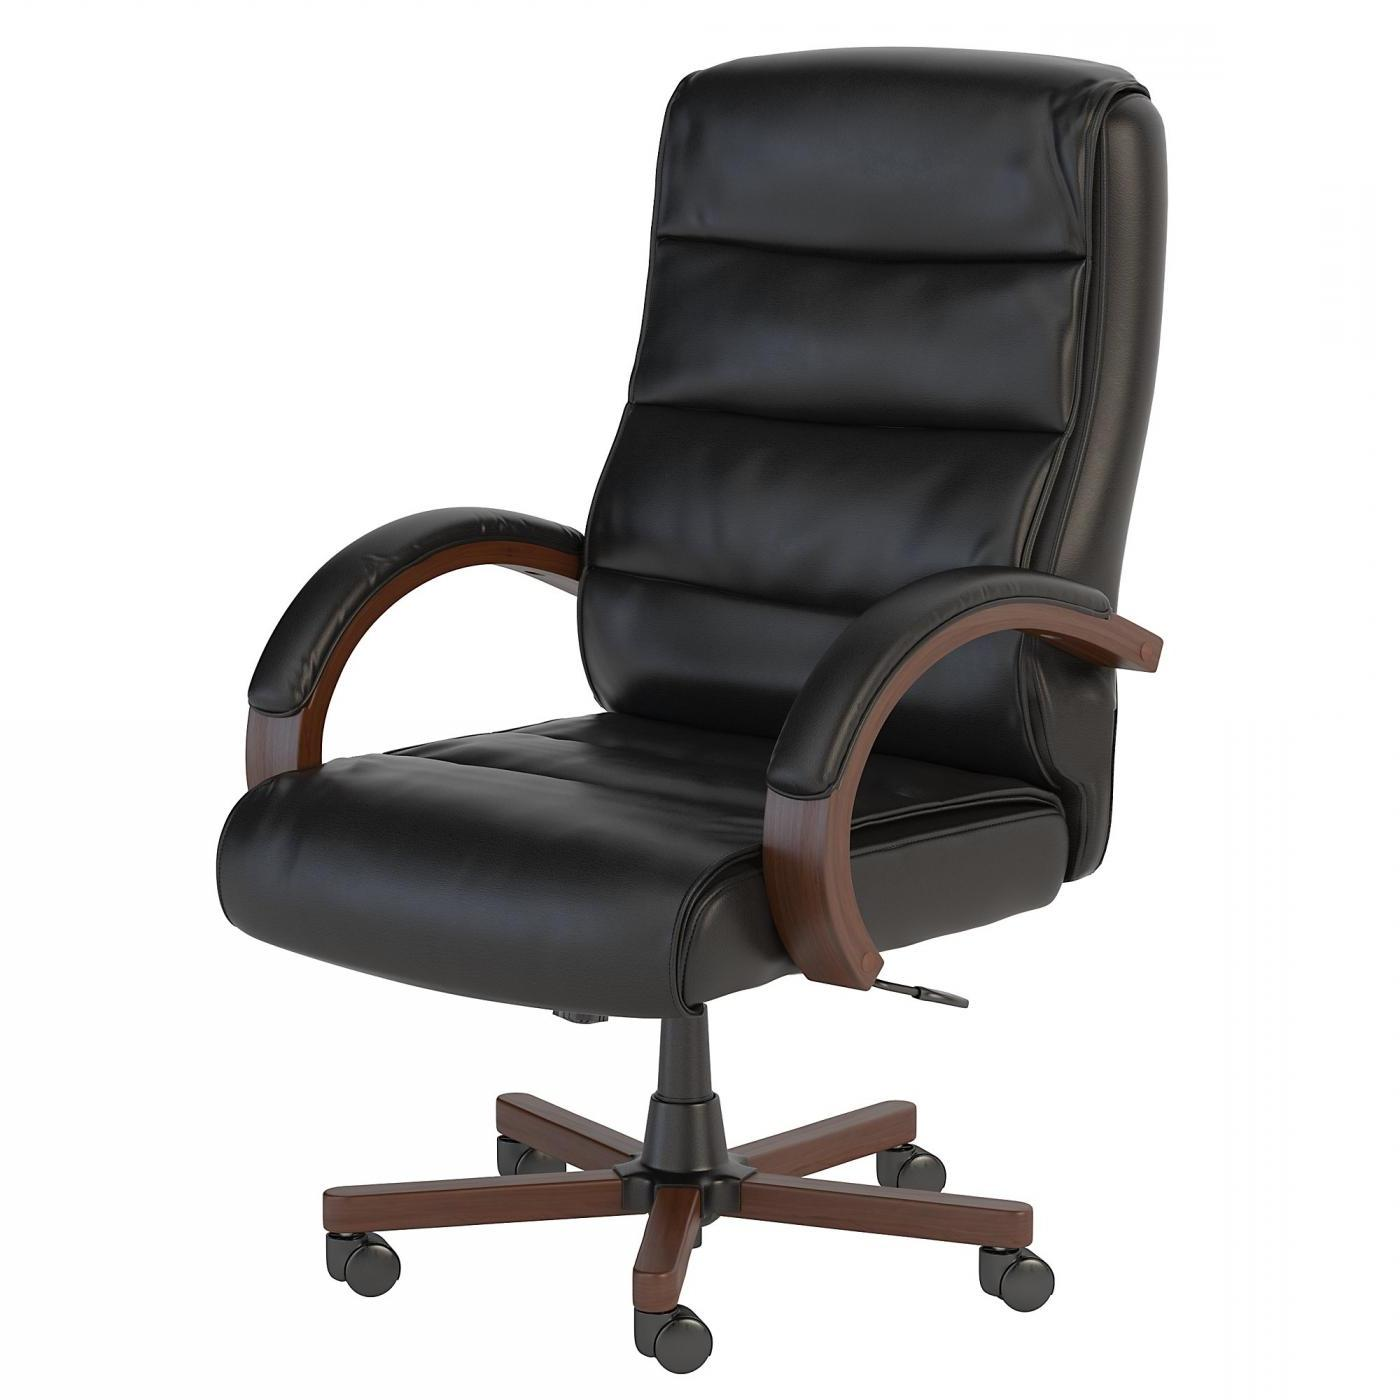 <font color=#c60><b>BUSH BUSINESS FURNITURE SOFT SENSE HIGH BACK LEATHER EXECUTIVE OFFICE CHAIR WITH WOOD ARMS. FREE SHIPPING</font></b> </font></b></font></b>